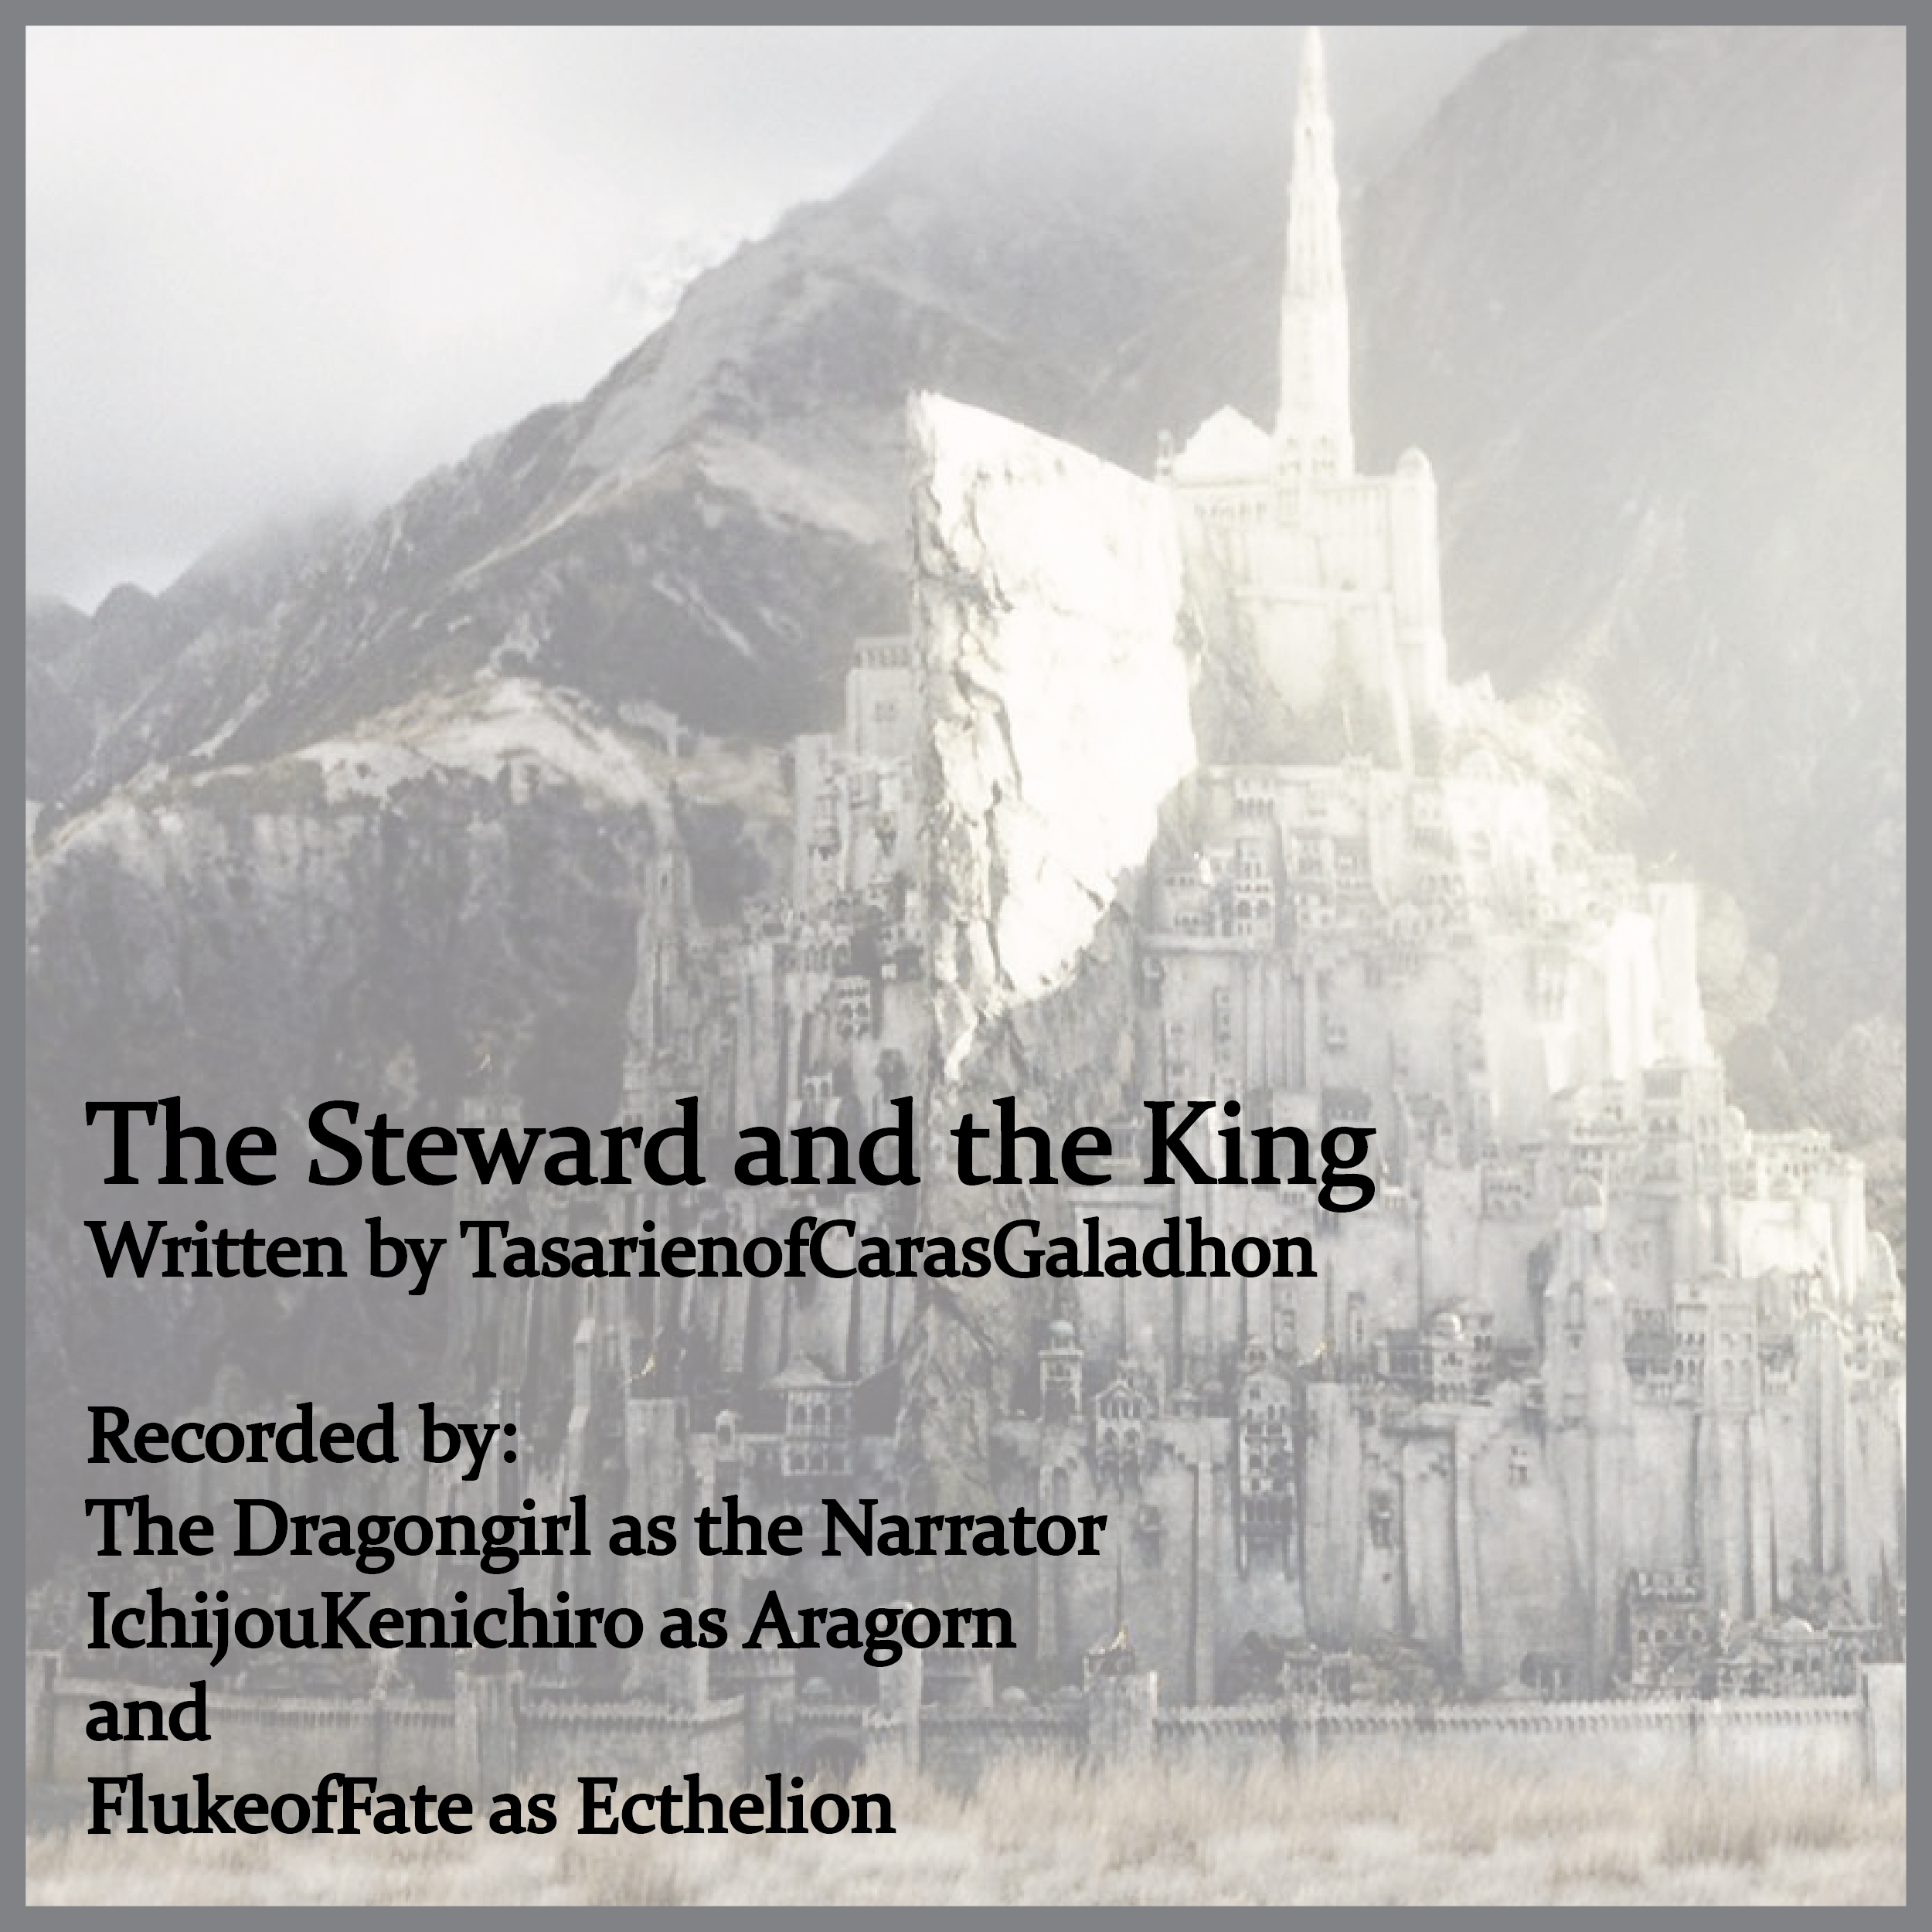 The Steward and the King Album Cover